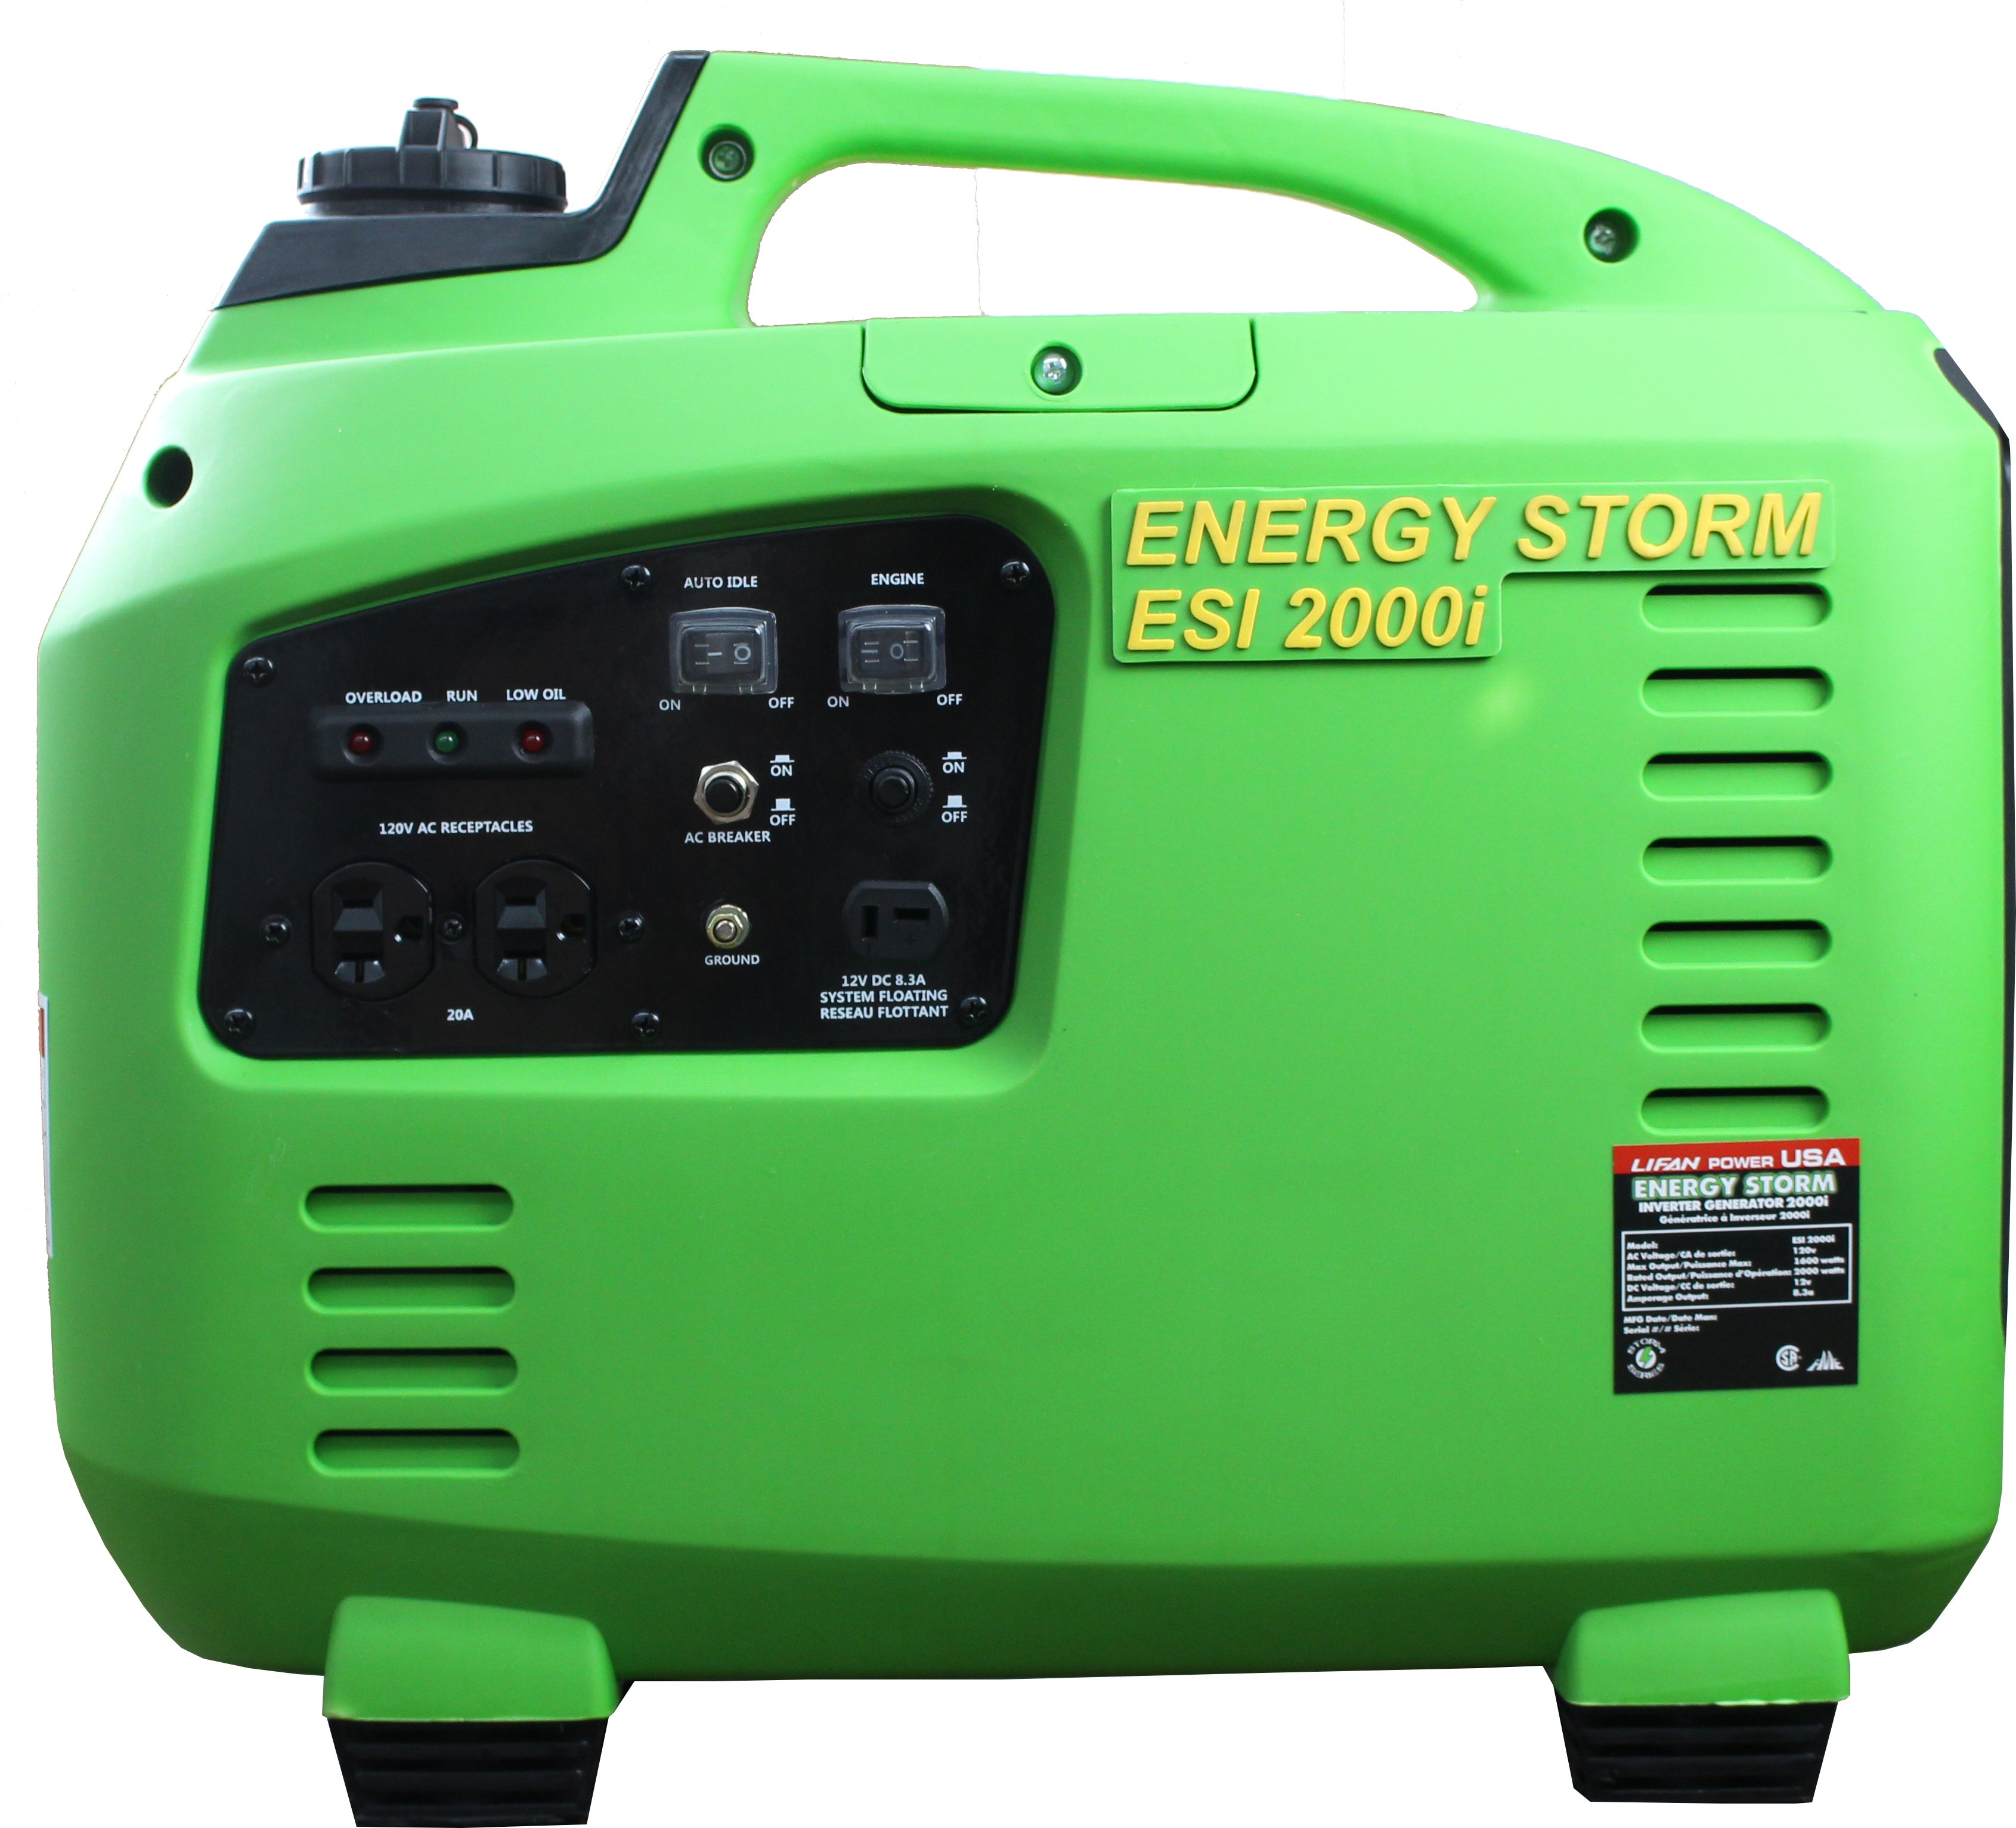 Tailgater/Camping Special, Energy Storm ESi2000i-CA (California Sales Compliant) 105cc Gasoline Powered Inverter Generator, light weight power, 50 State and Canada Sales Compliant